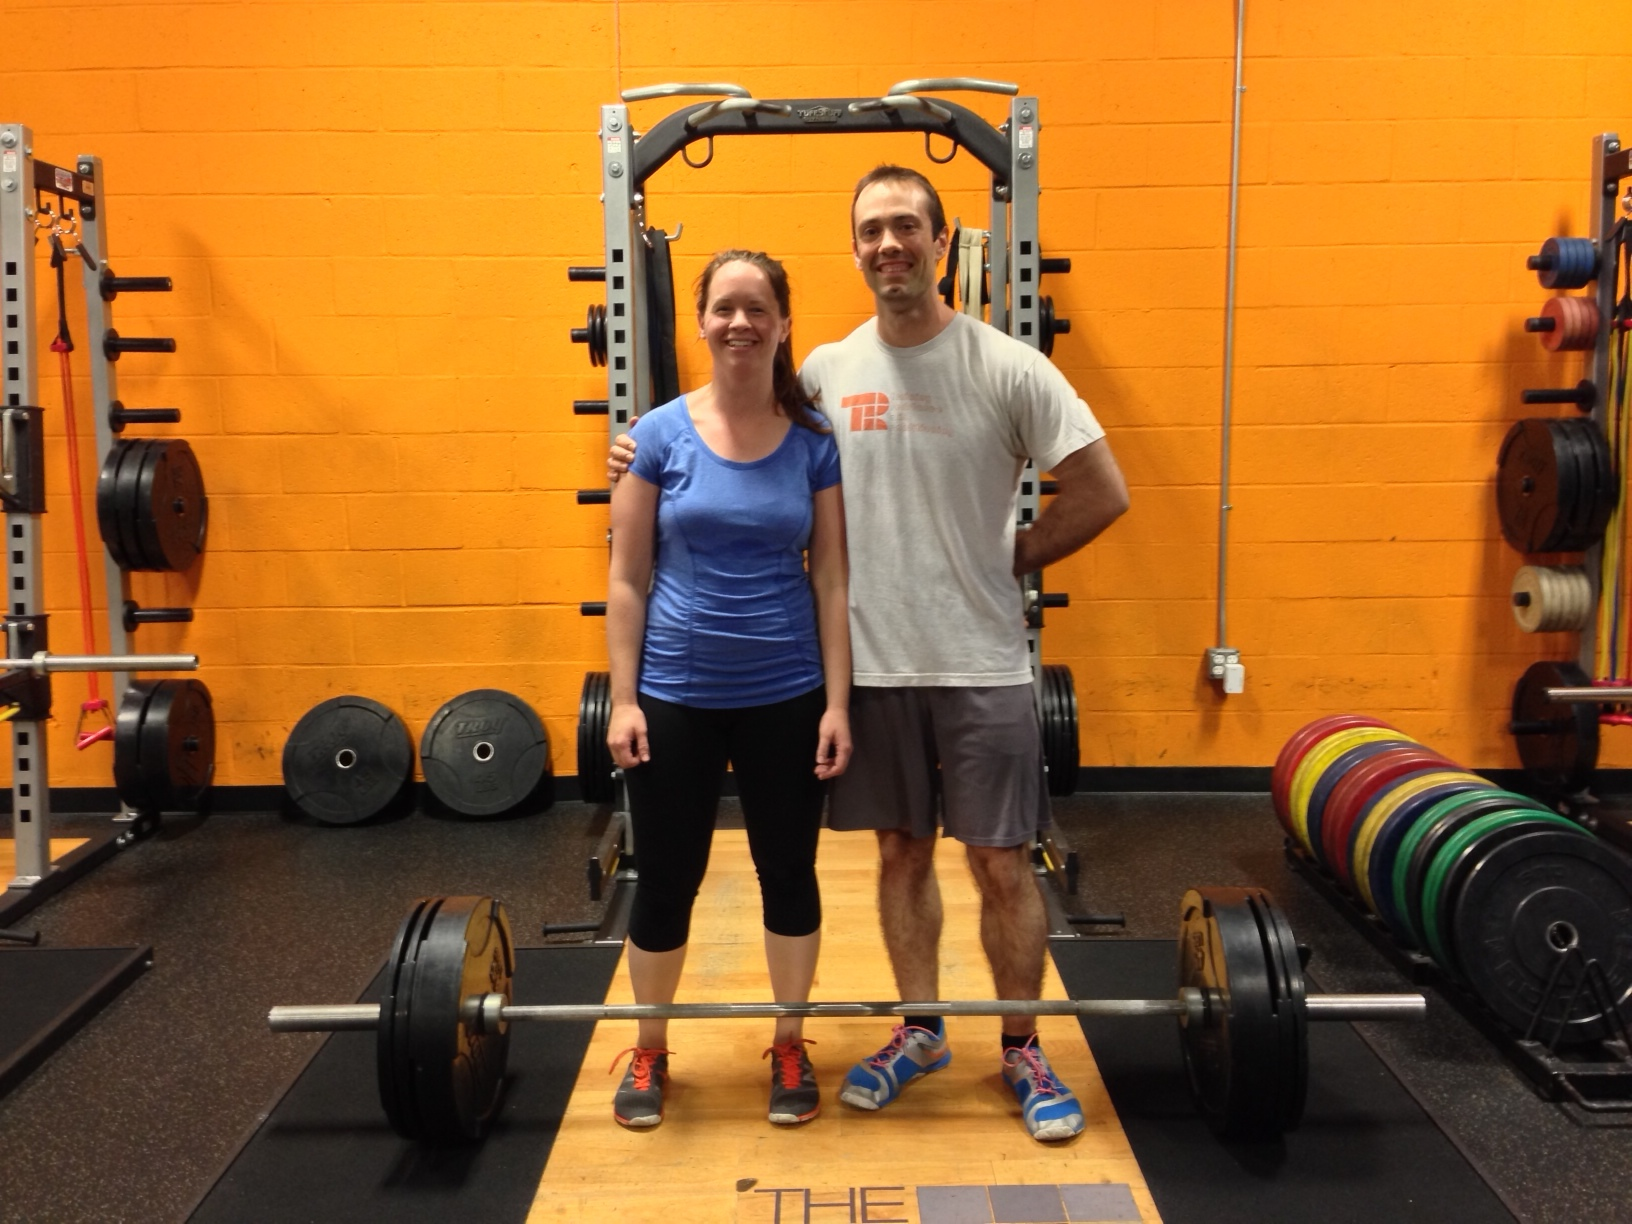 Sara and I with her (now outdated)deadlift PR.